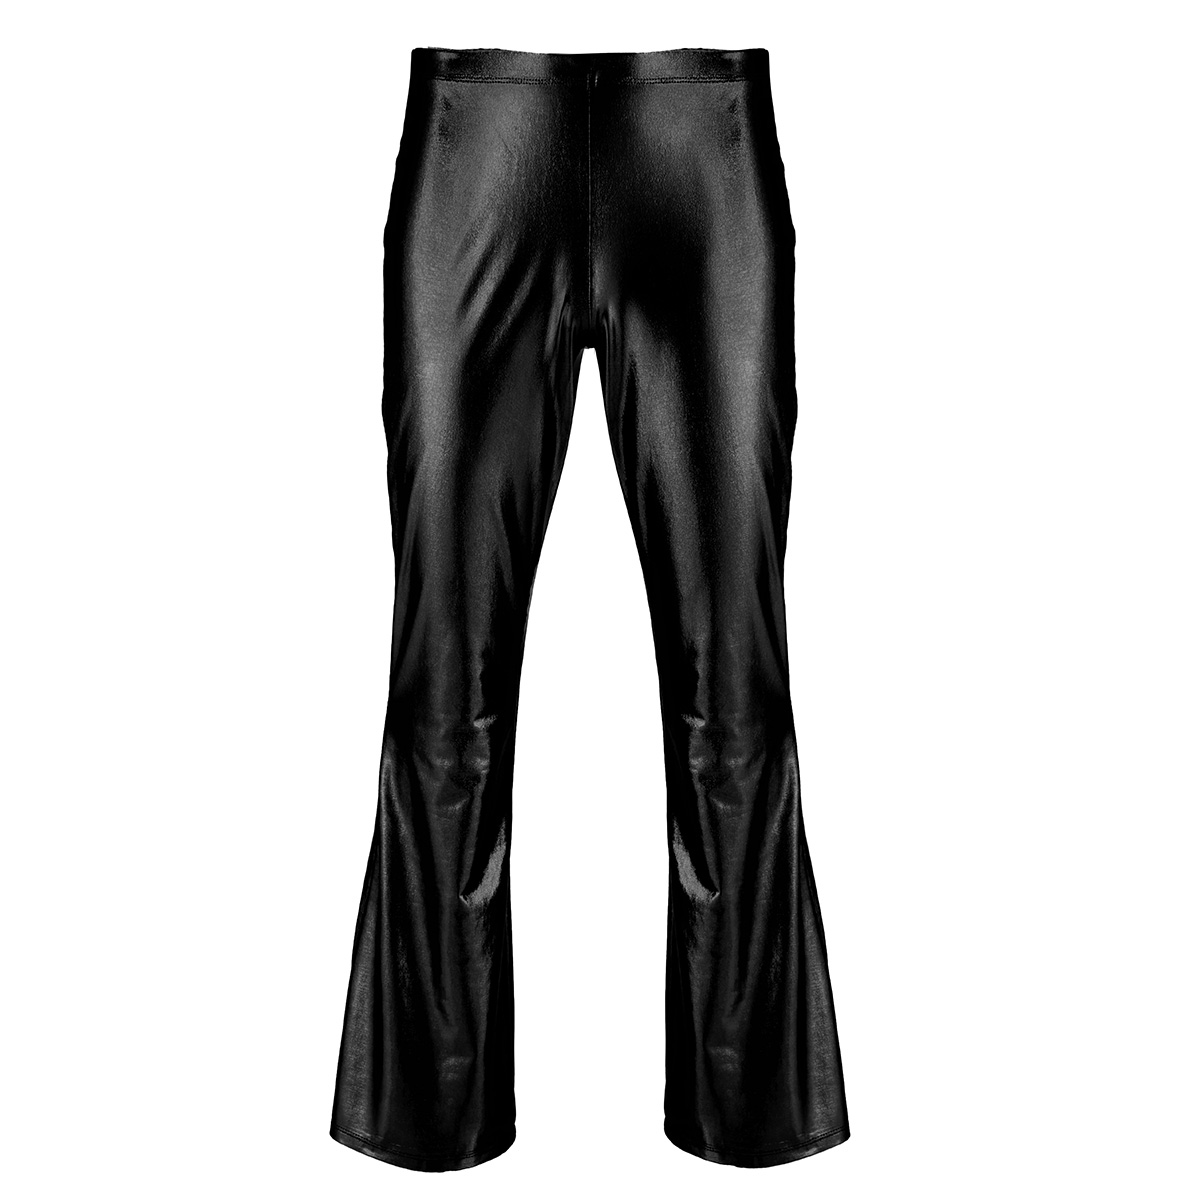 ChicTry Adults Mens Shiny Metallic Disco Pants with Bell Bottom Flared Long Pants Dude Costume Trousers for 70's Theme Parties 34